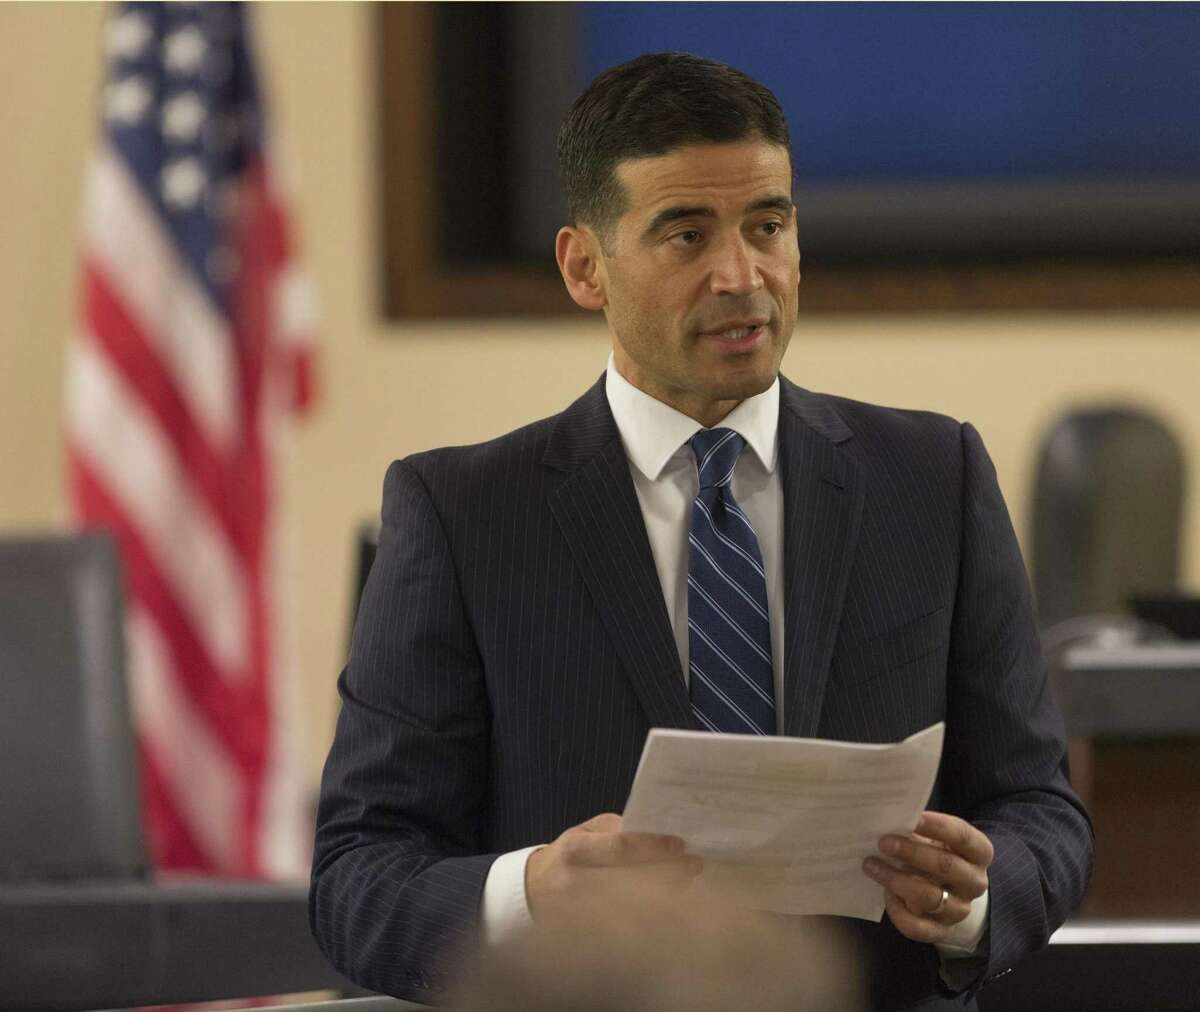 Bexar County District Attorney Nico LaHood, a business partner with FourWinds Logistics consultant Gary Cain, could be called to testify criminal trial of Cain and state Sen. Carlos Uresti.